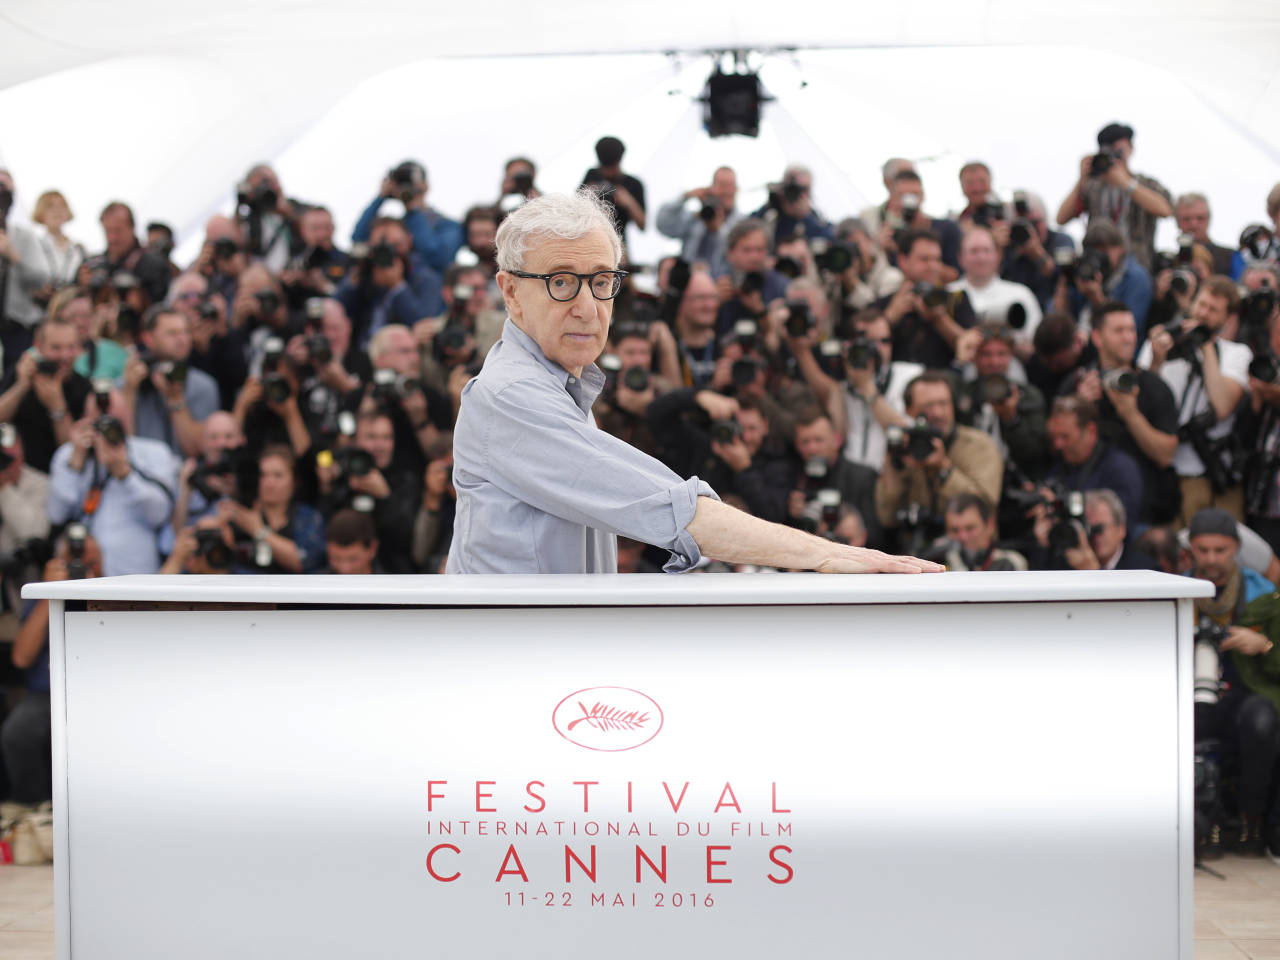 hollywood reporter banned from cannes event after publishing hollywood reporter banned from cannes event after publishing critical ronan farrow essay on woody allen